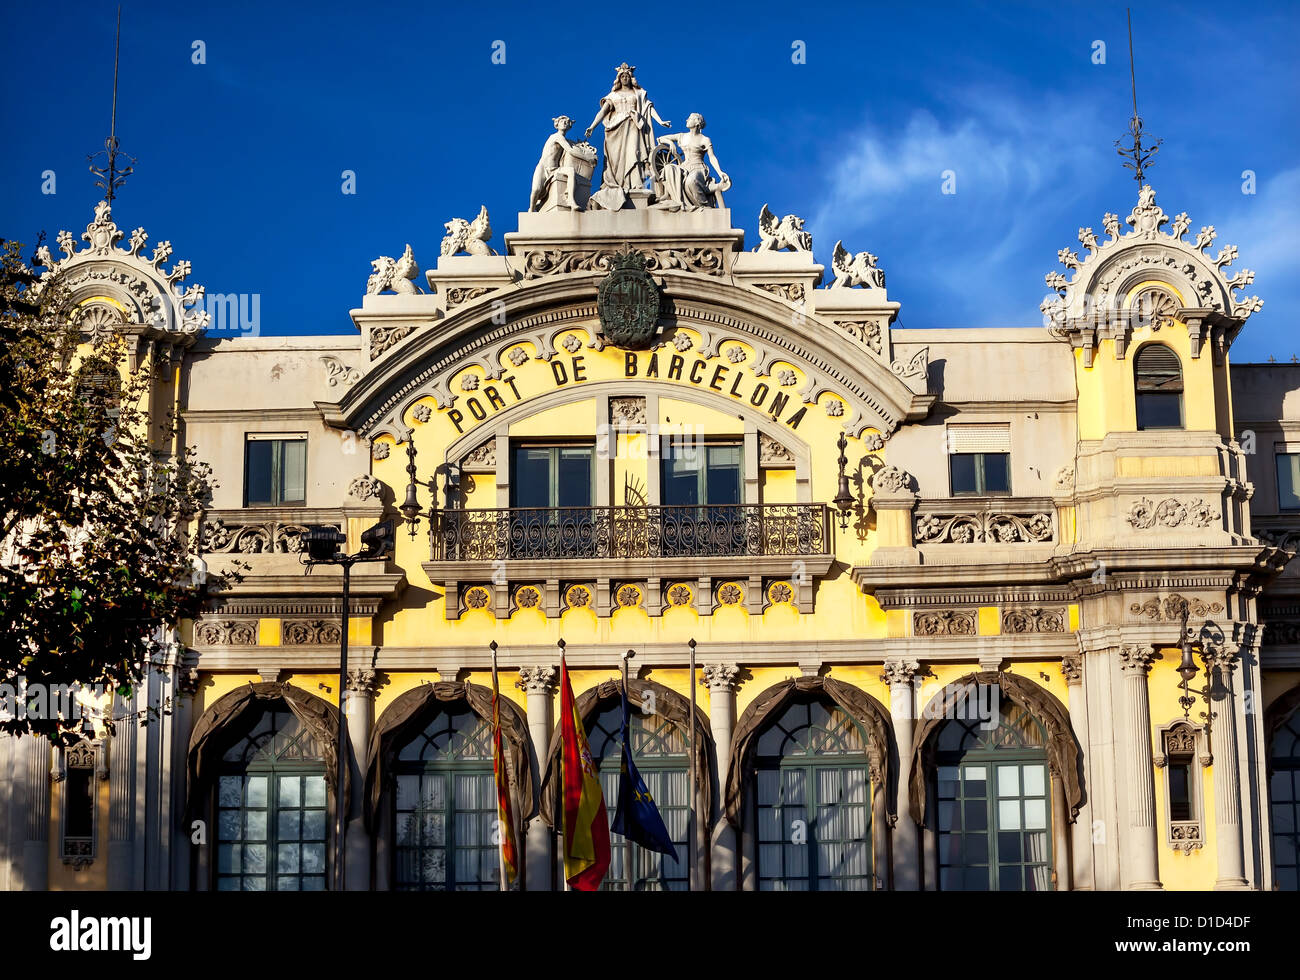 Port Authority Building of Barcelona Building in Barcelona, Spain - Stock Image